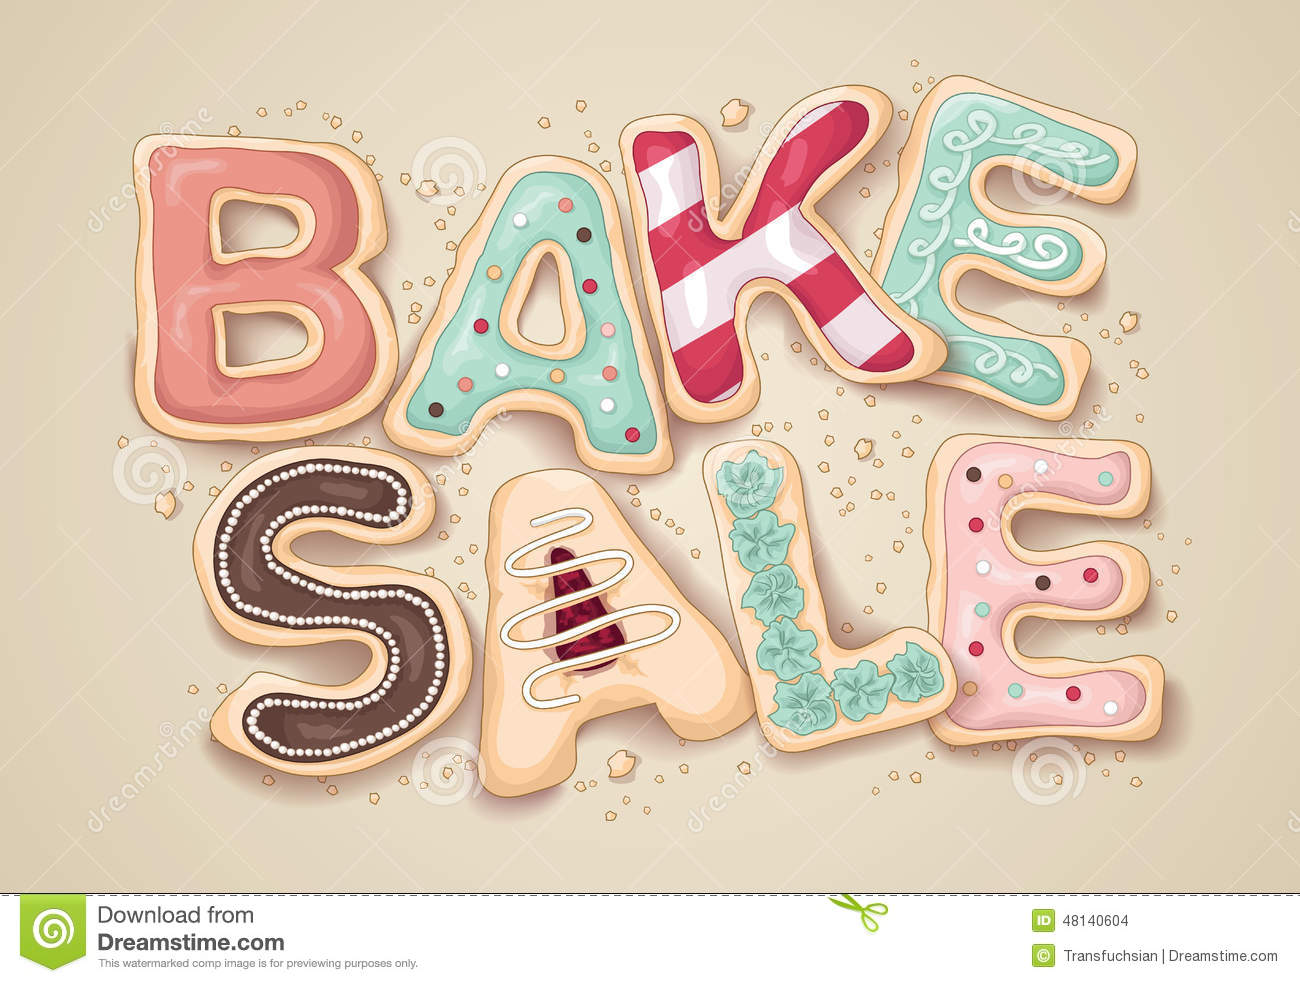 Bake Sale Cookie Letter Illustration Stock Vector Illustration Of